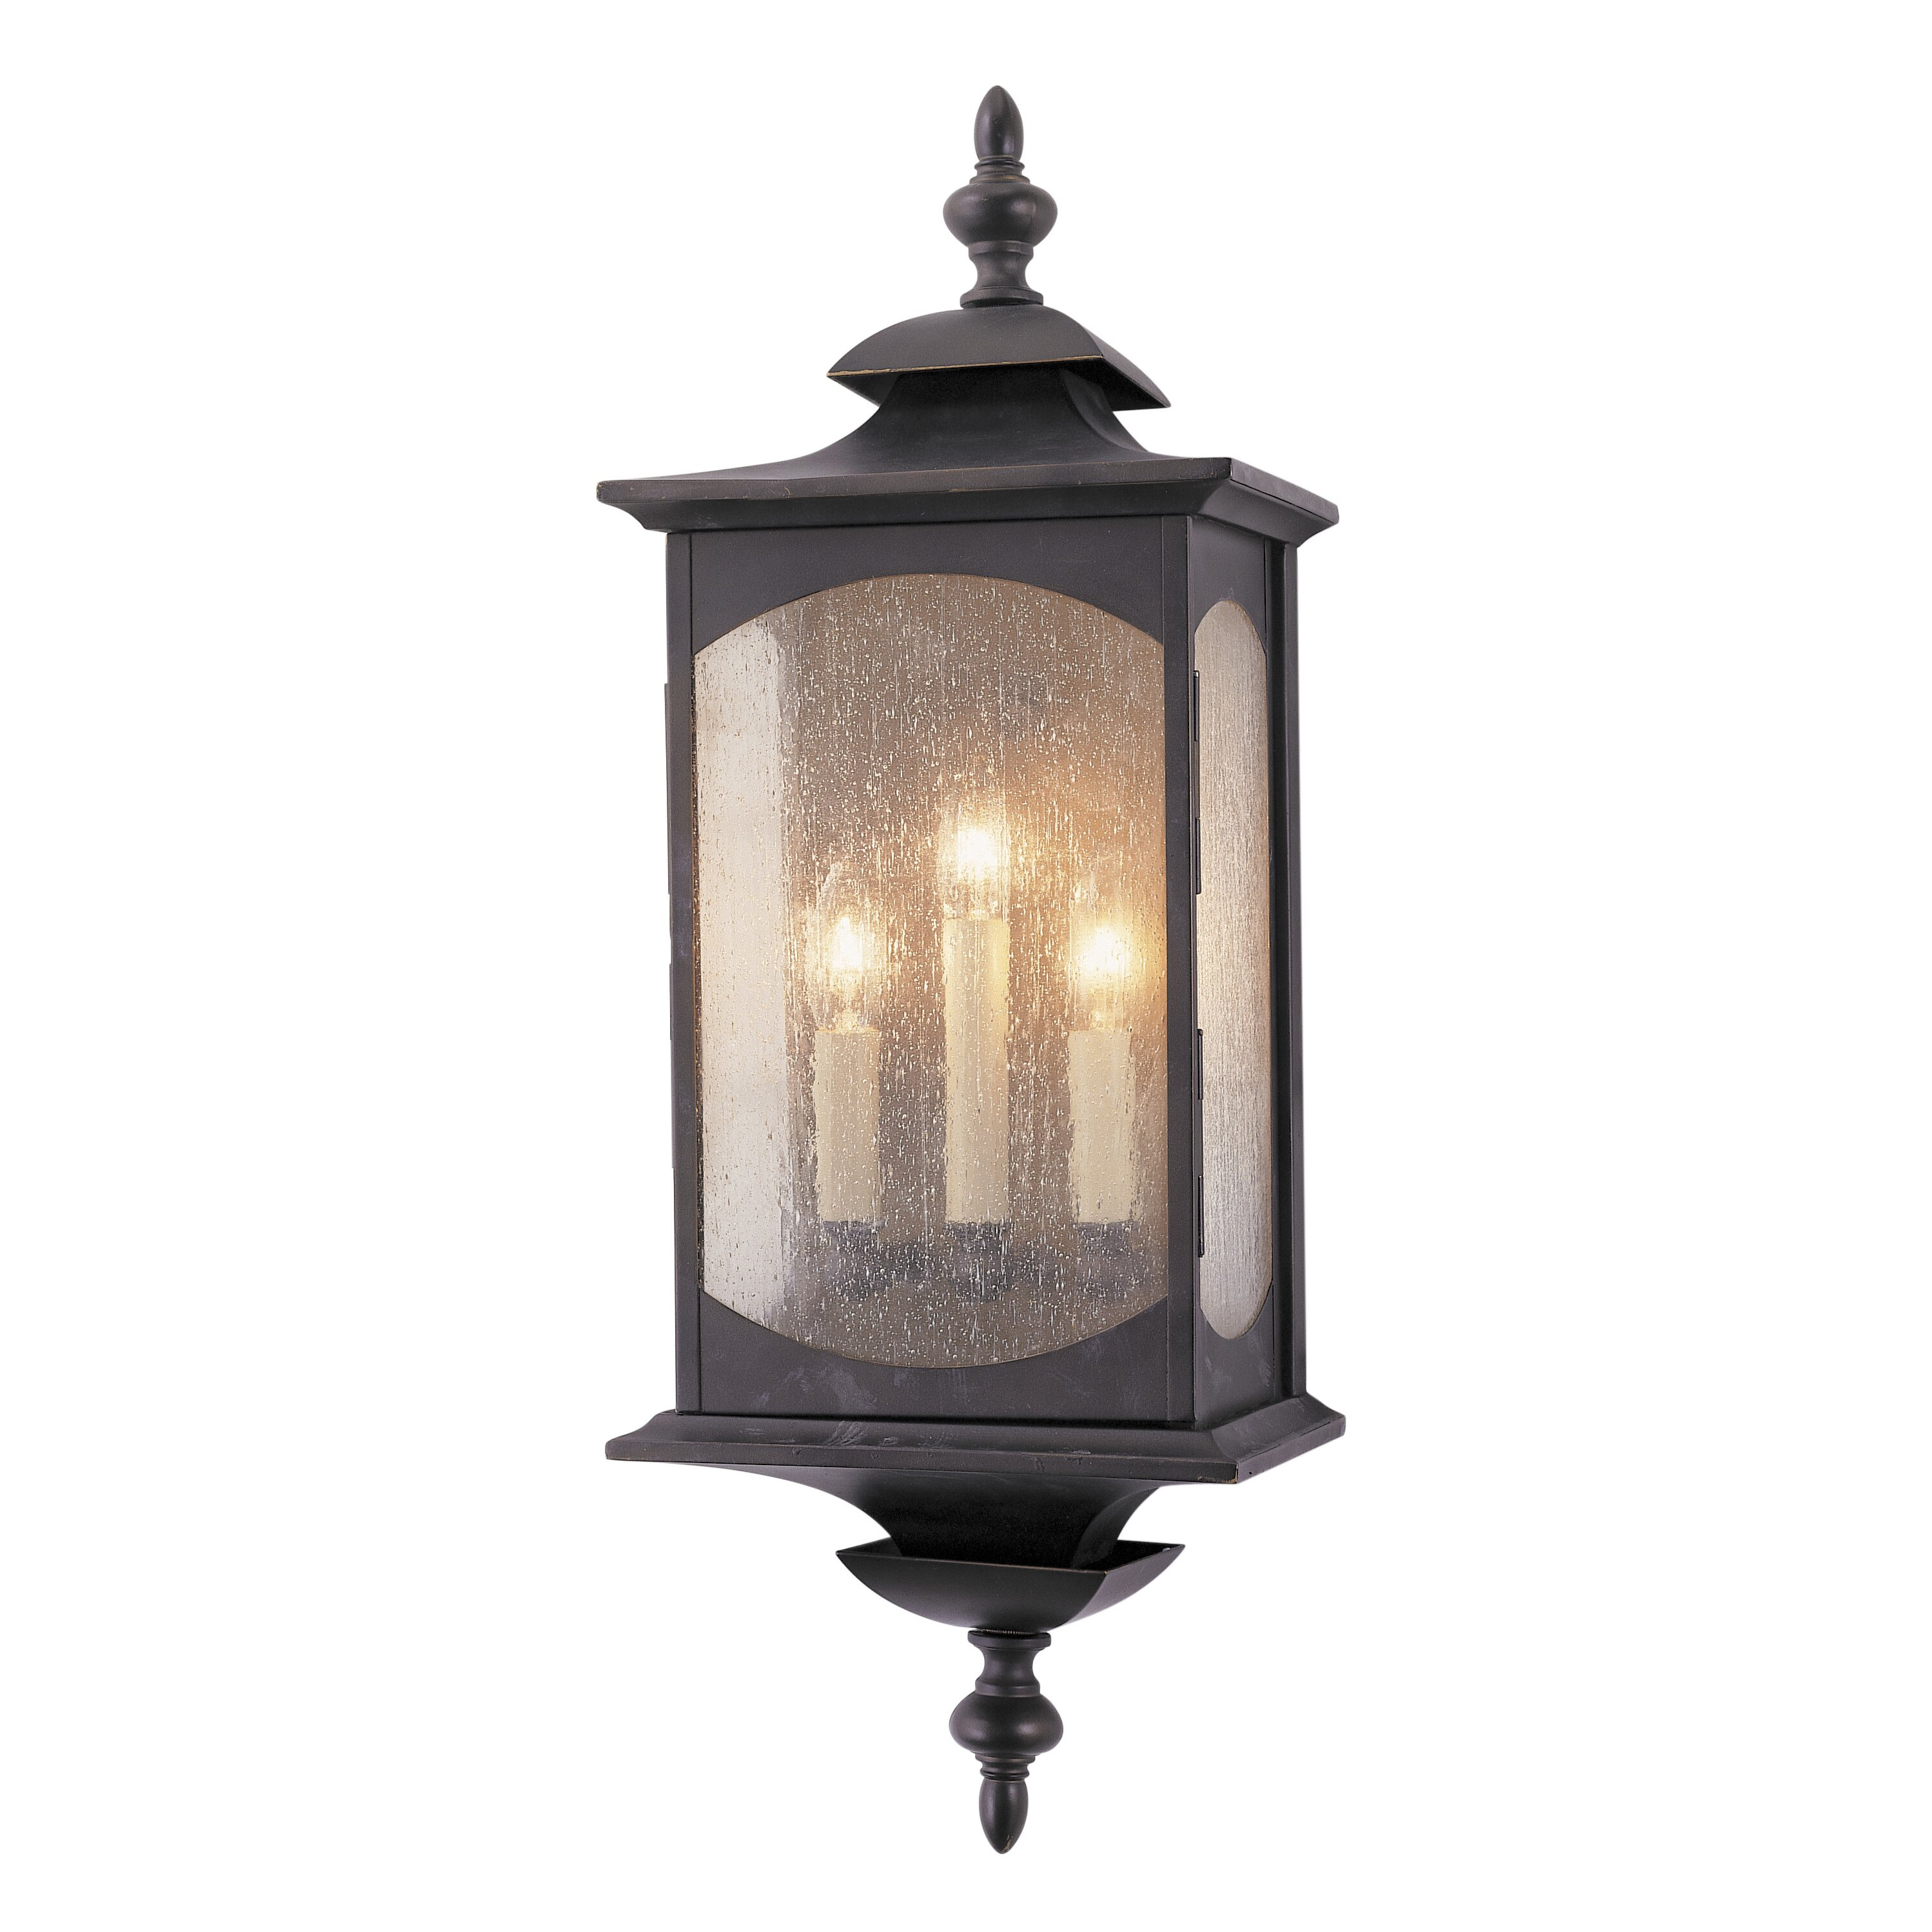 White Square Wall Lights : Feiss Market Square 3 Light Outdoor Wall Lantern & Reviews Wayfair